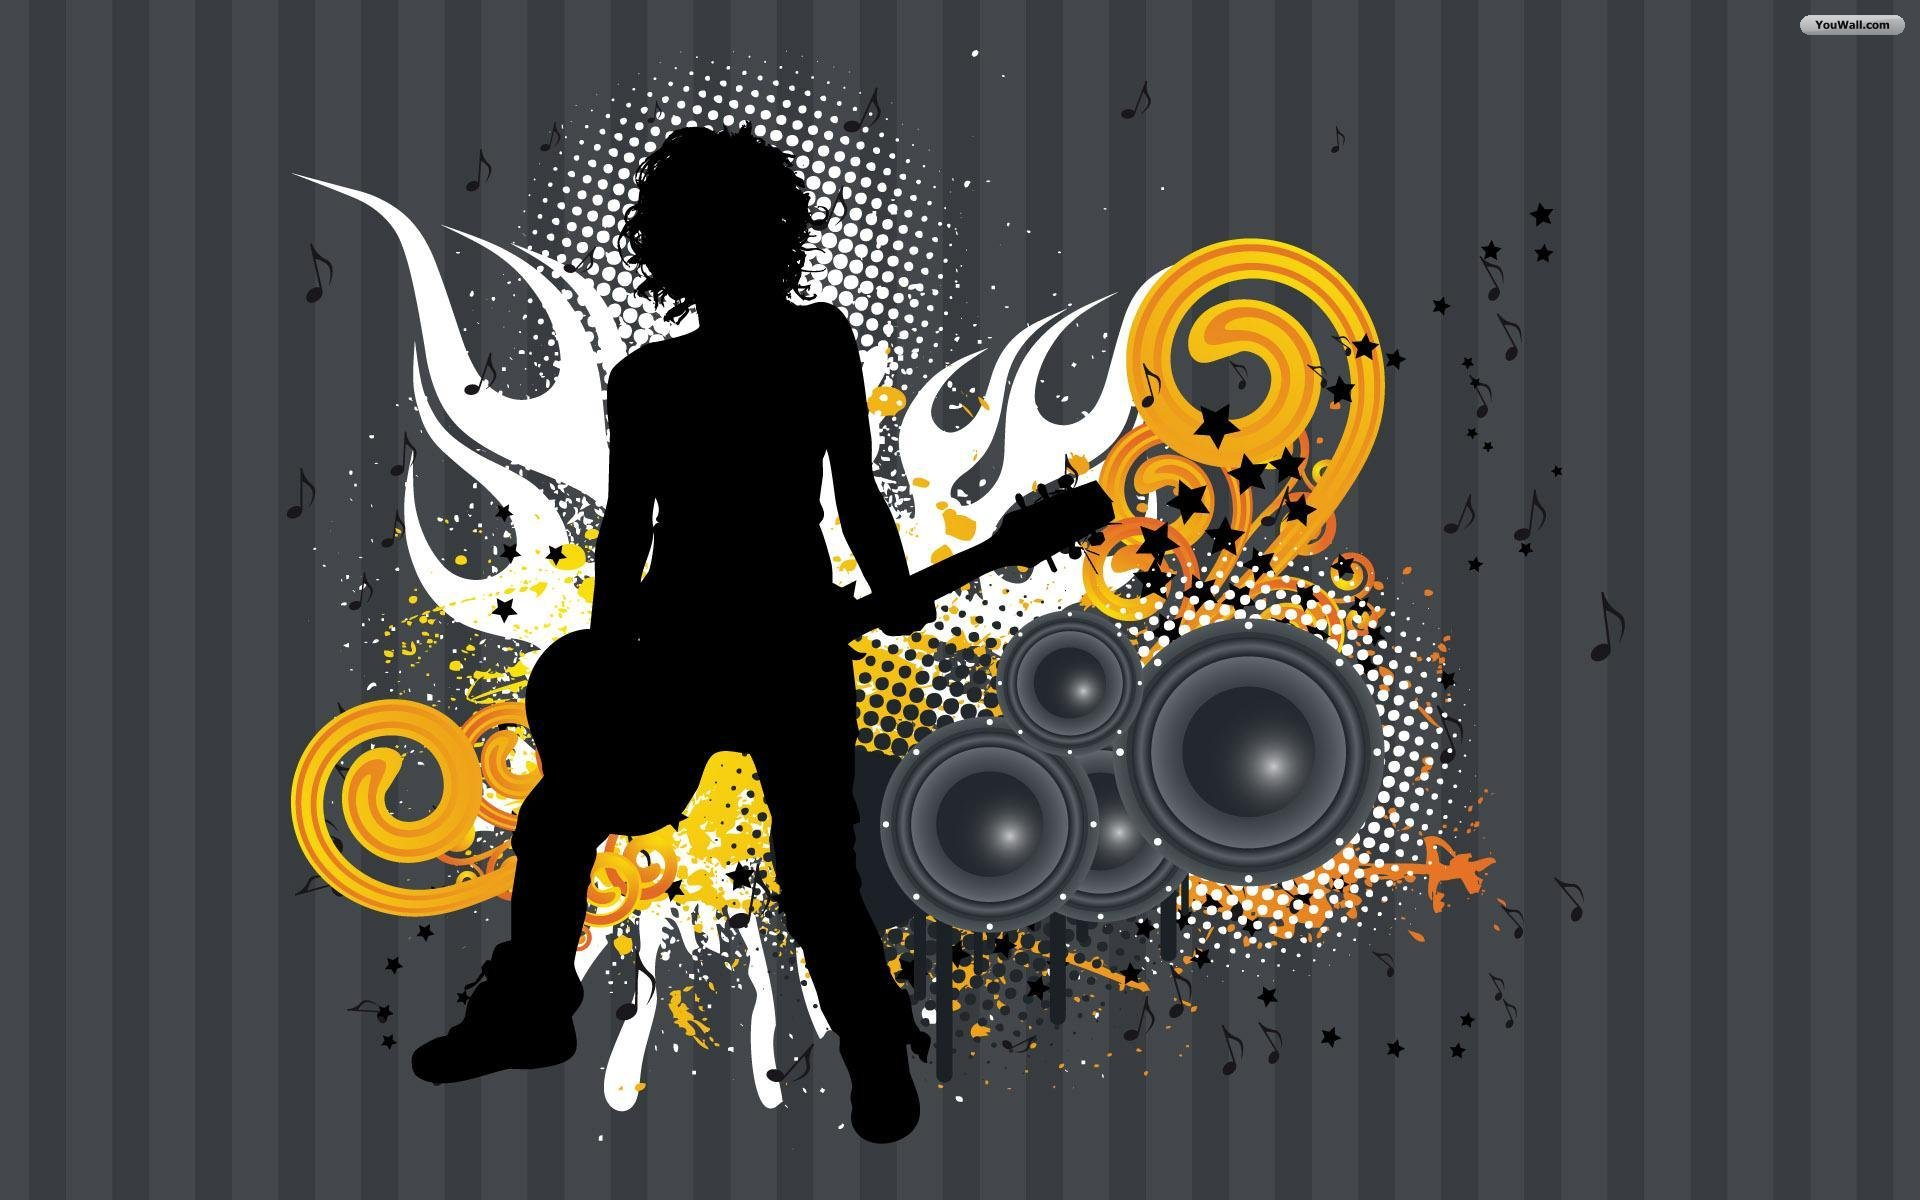 Rock n roll background images - Rock N Roll Wallpapers